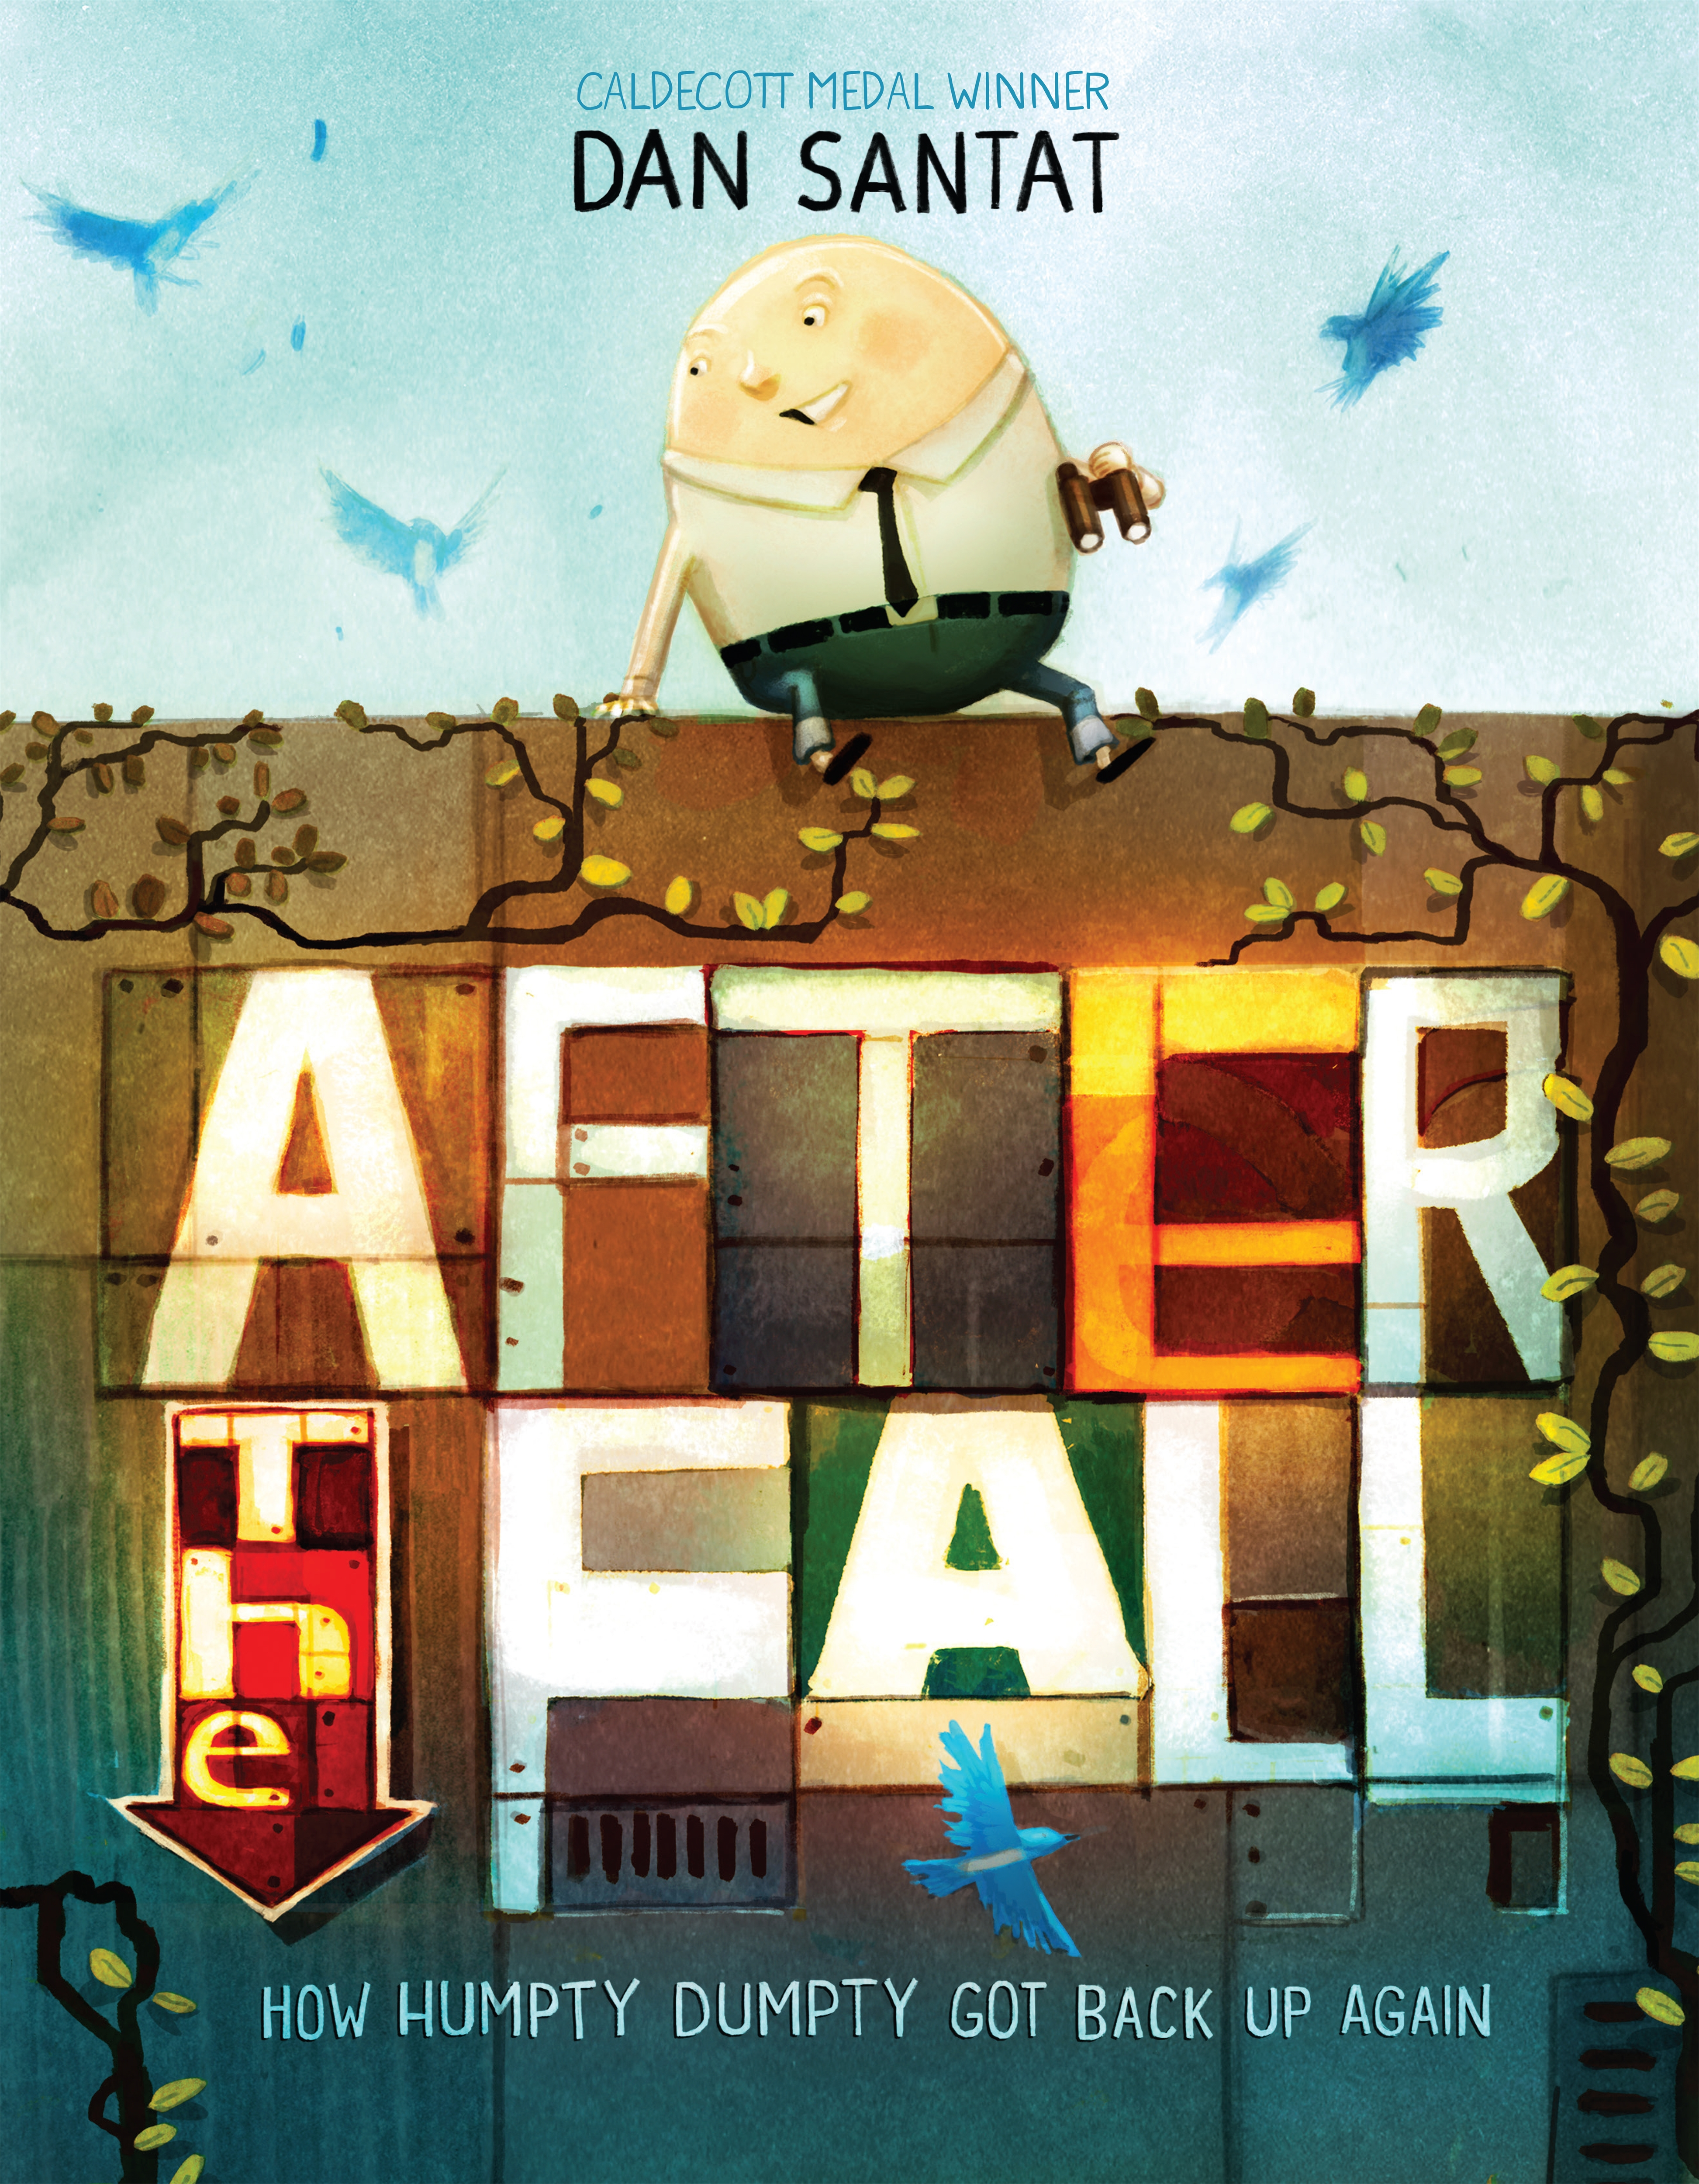 After the fall how Humpty Dumpty got back up again cover image